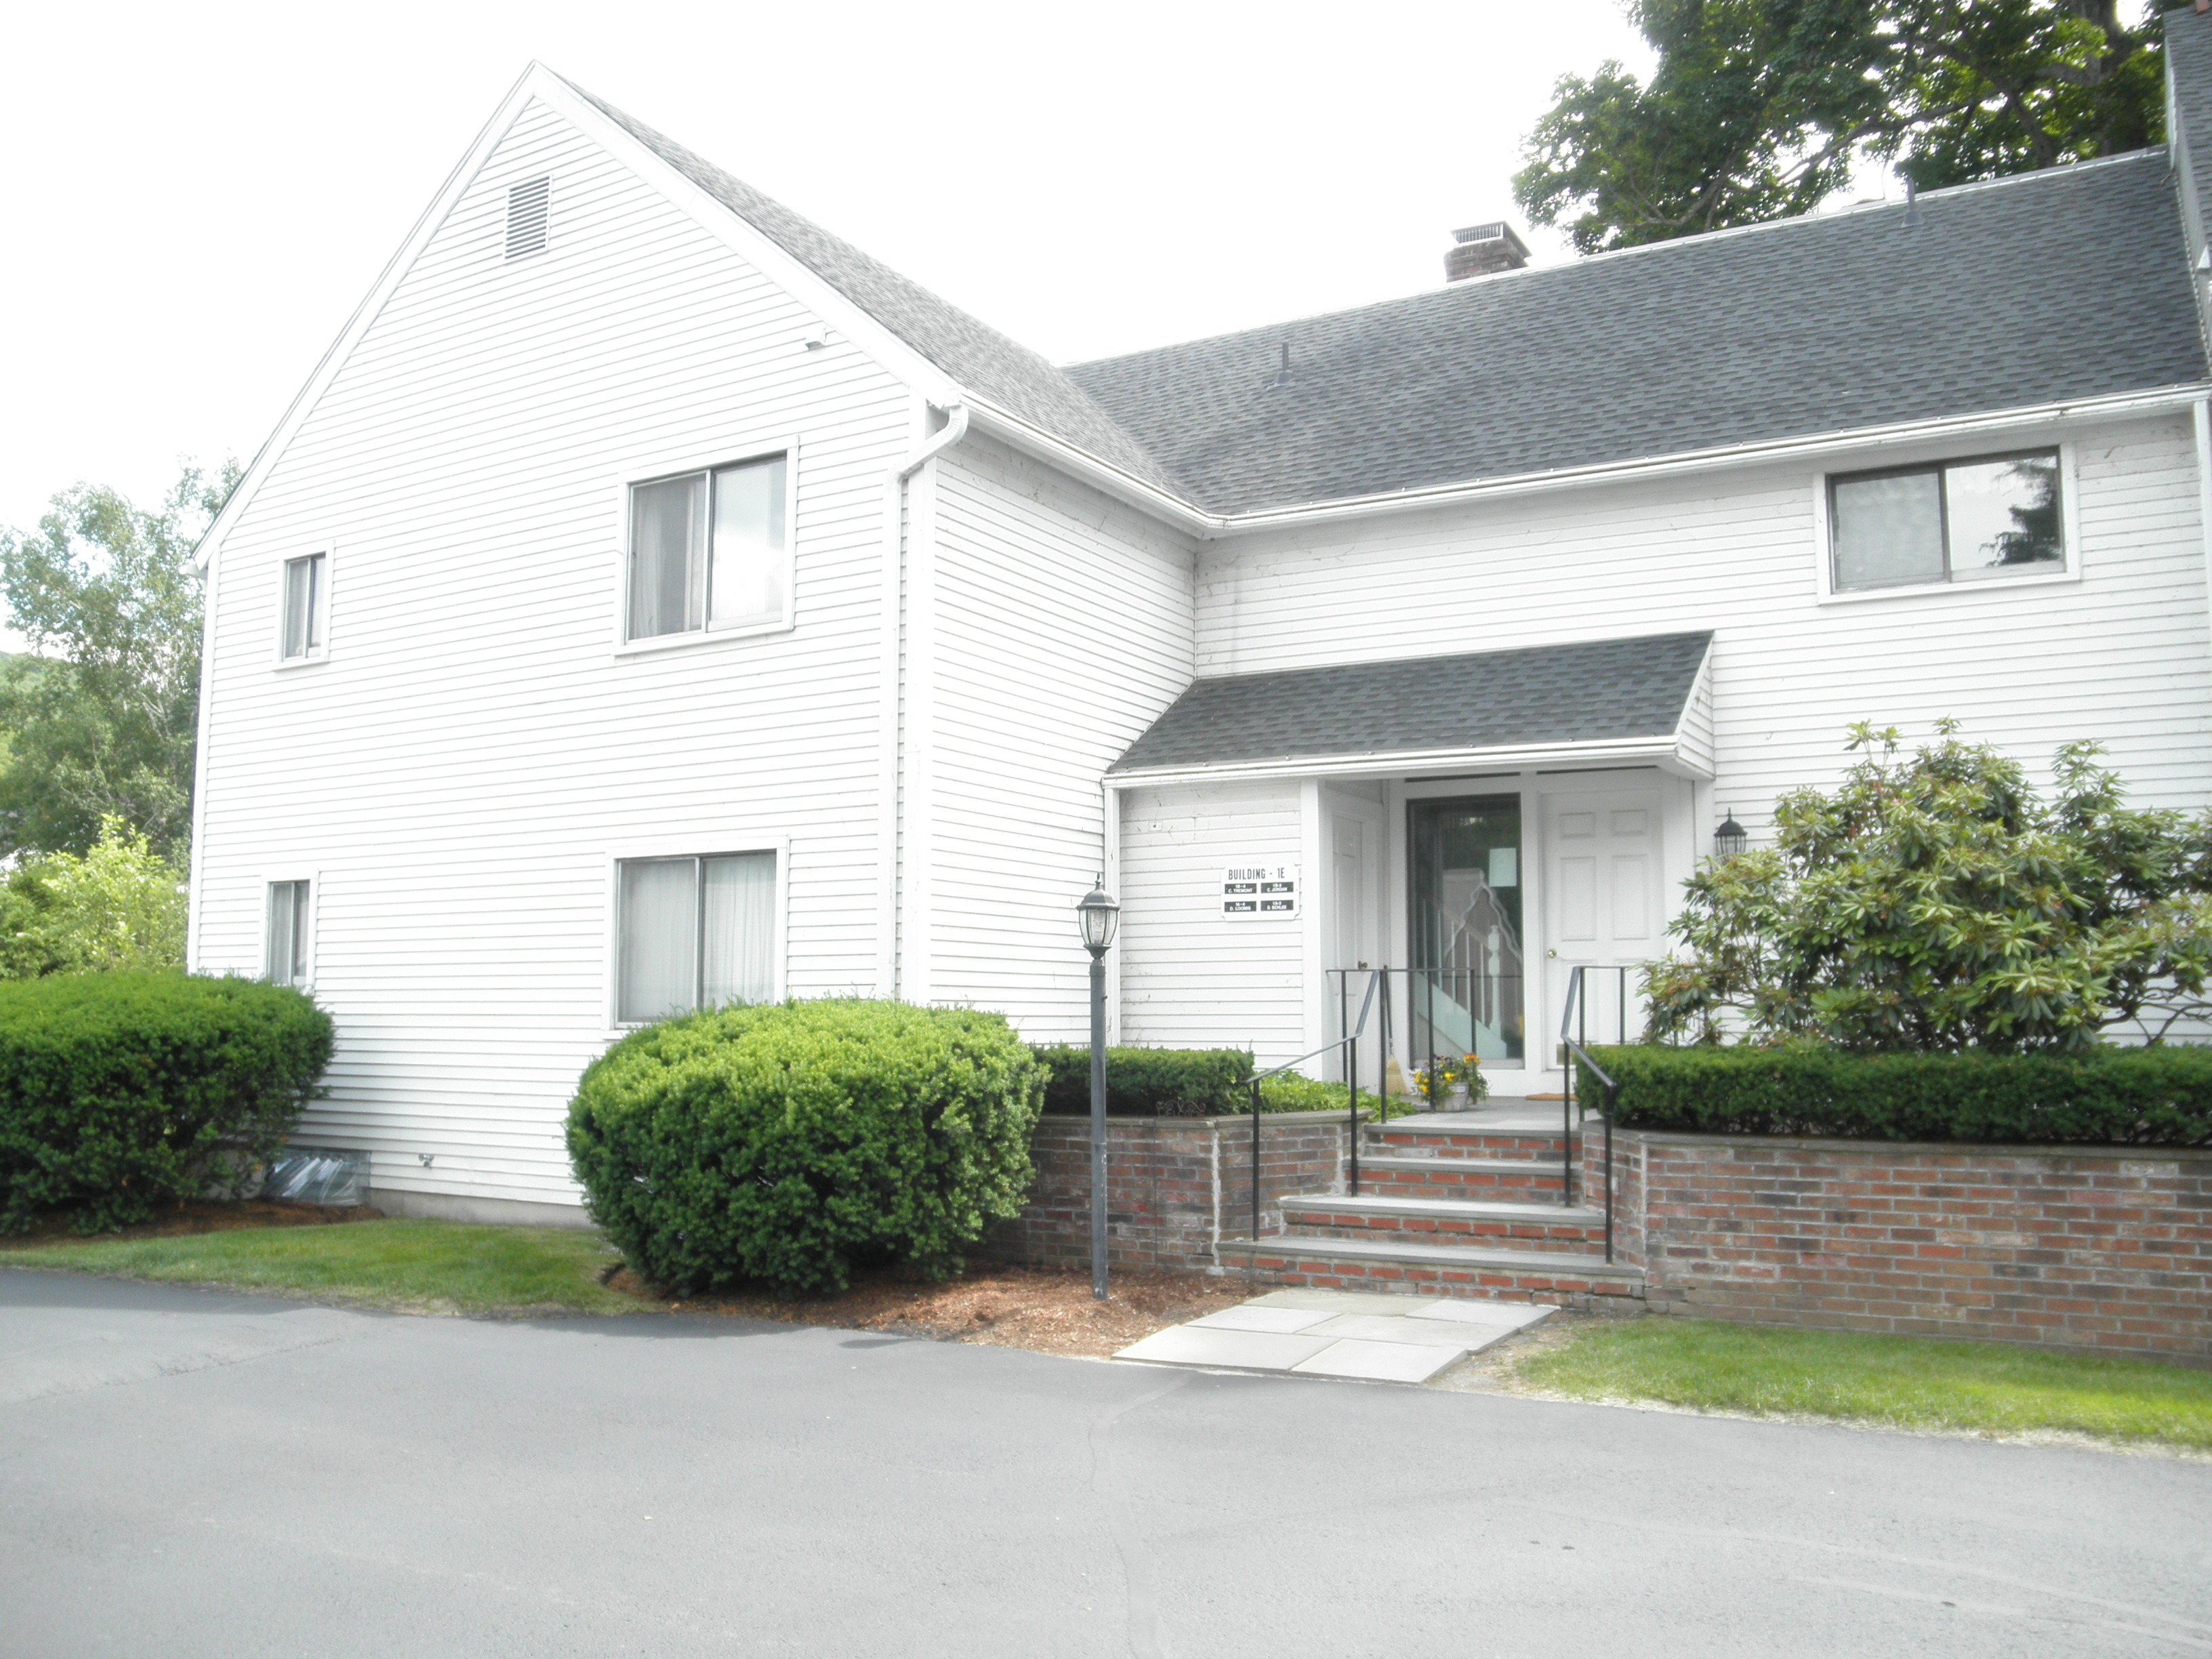 Condominium for Sale at First Floor Kent Condo 80 North Main St 1A4 Kent, Connecticut 06757 United States